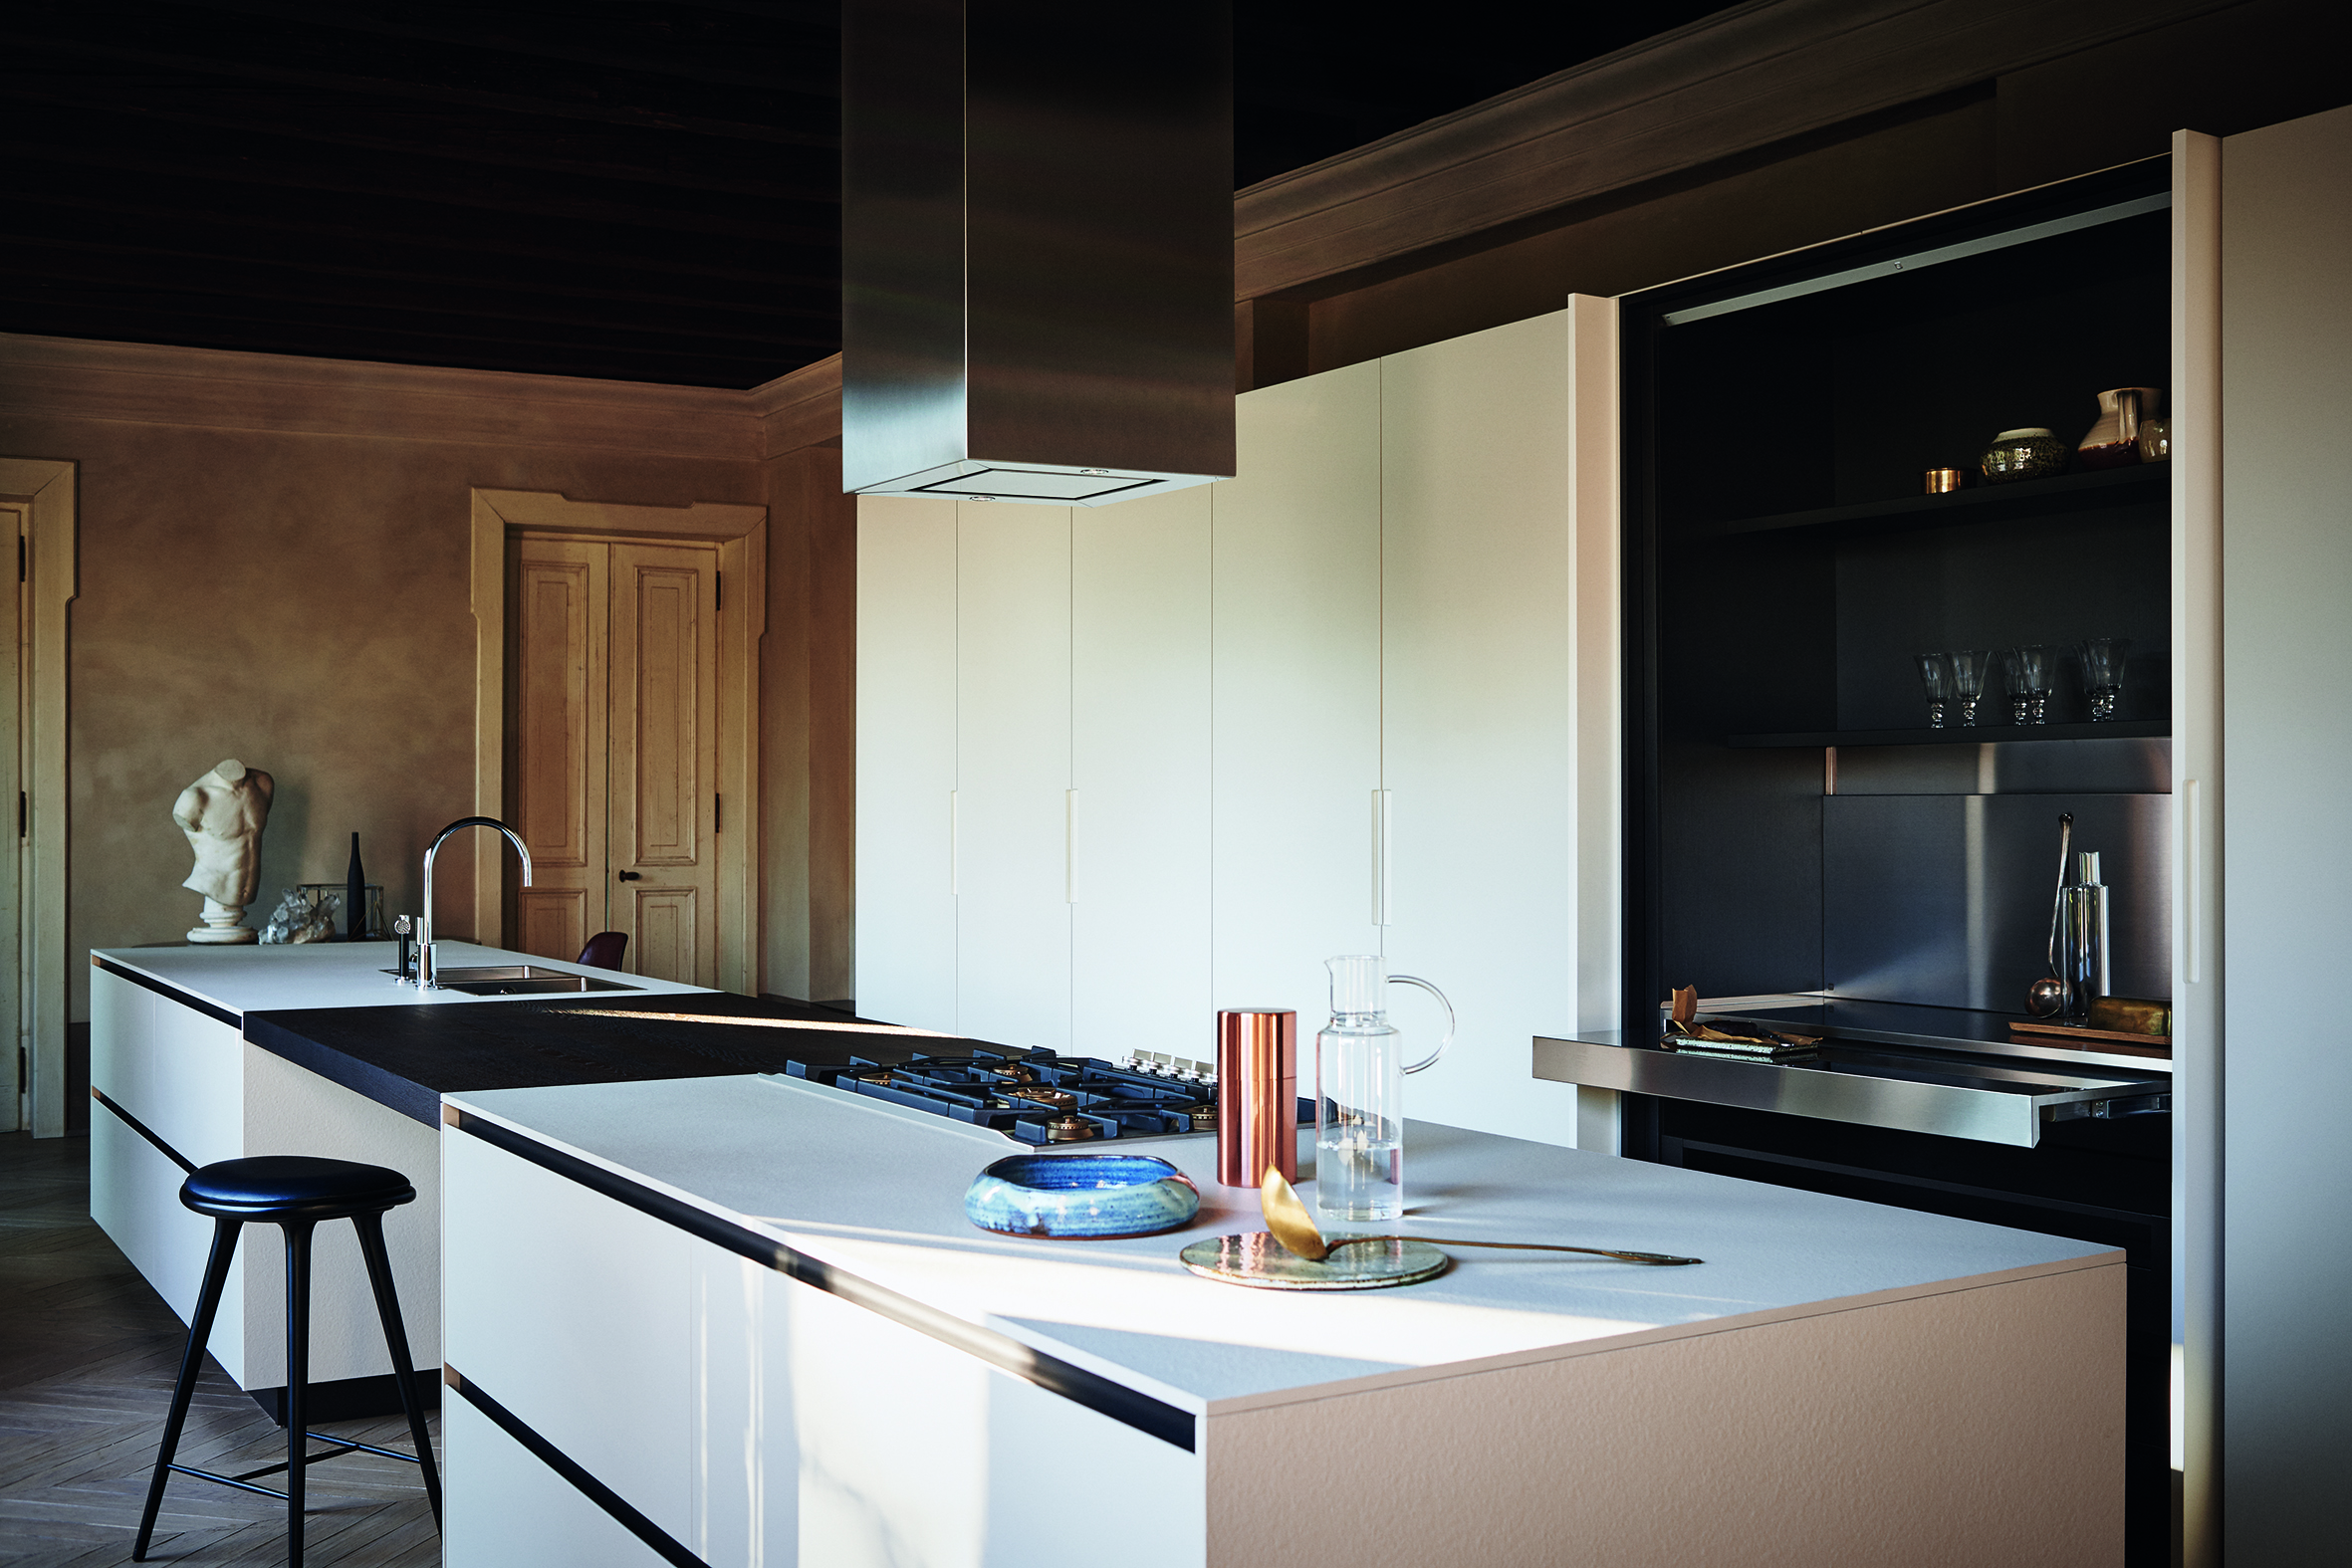 Maxima 2.2 kitchen by Cesar